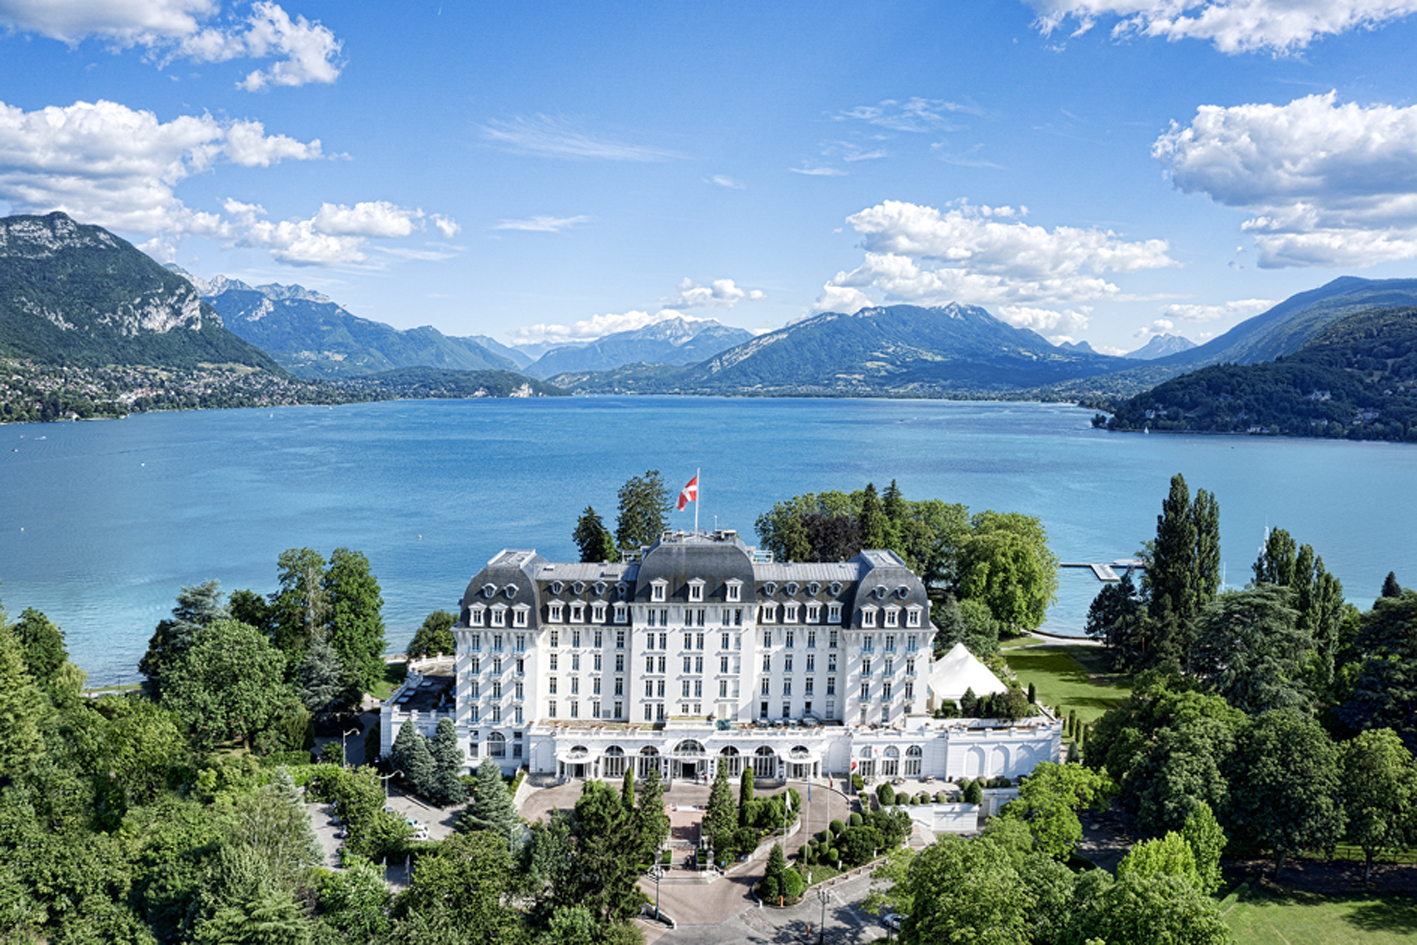 Imperial Palace, Annecy (B&B hotel) - Exceptional setting on Lake Annecy